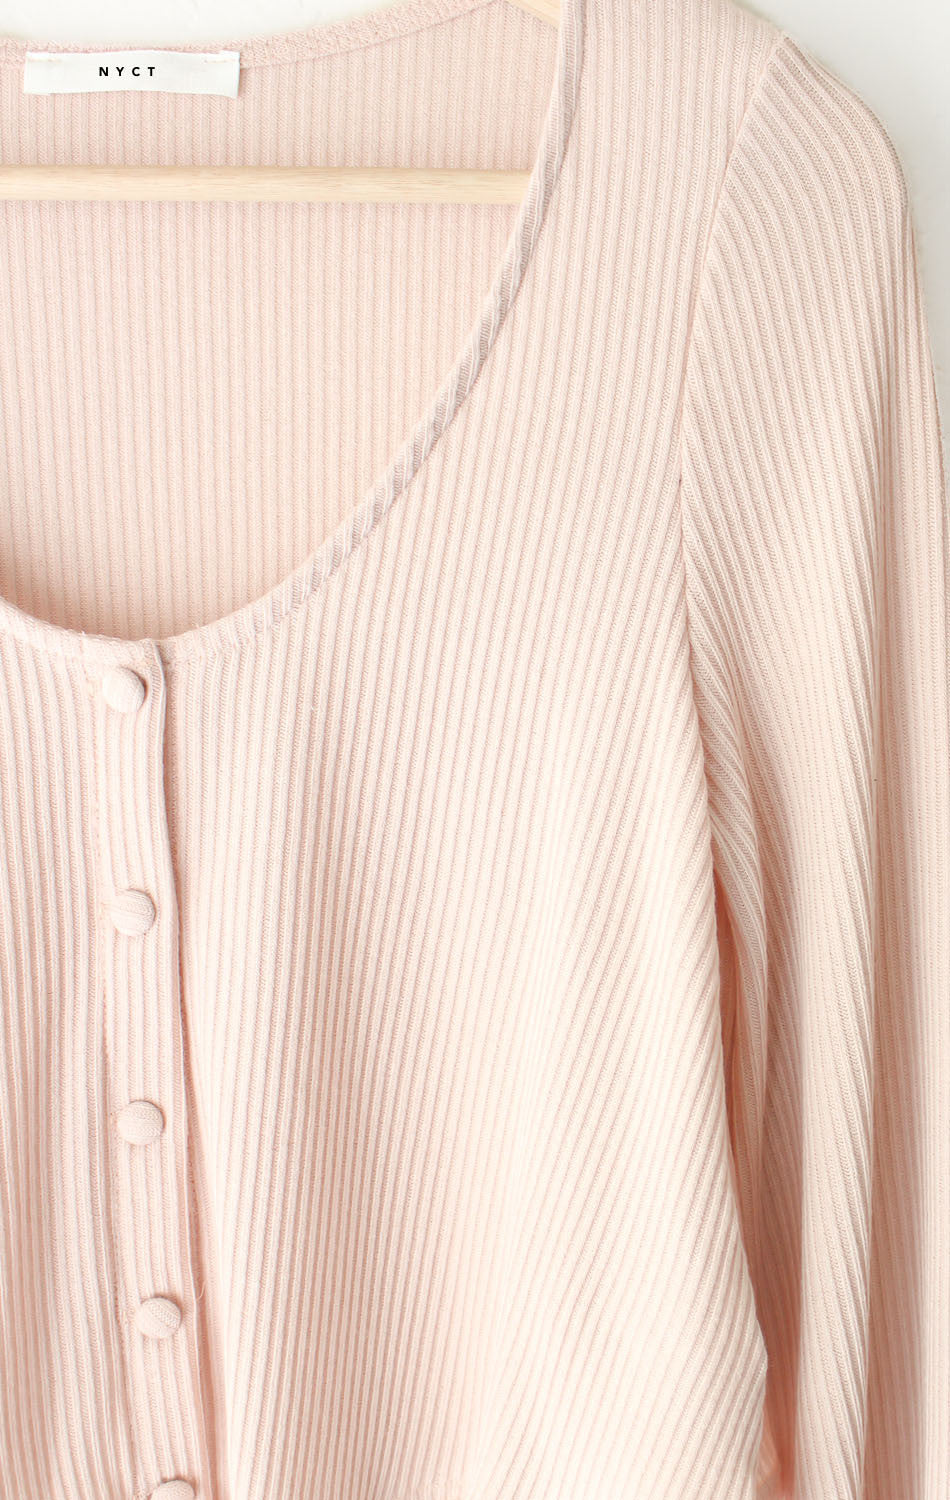 NYCT Clothing Ribbed Knit Crop Sweater - Pink